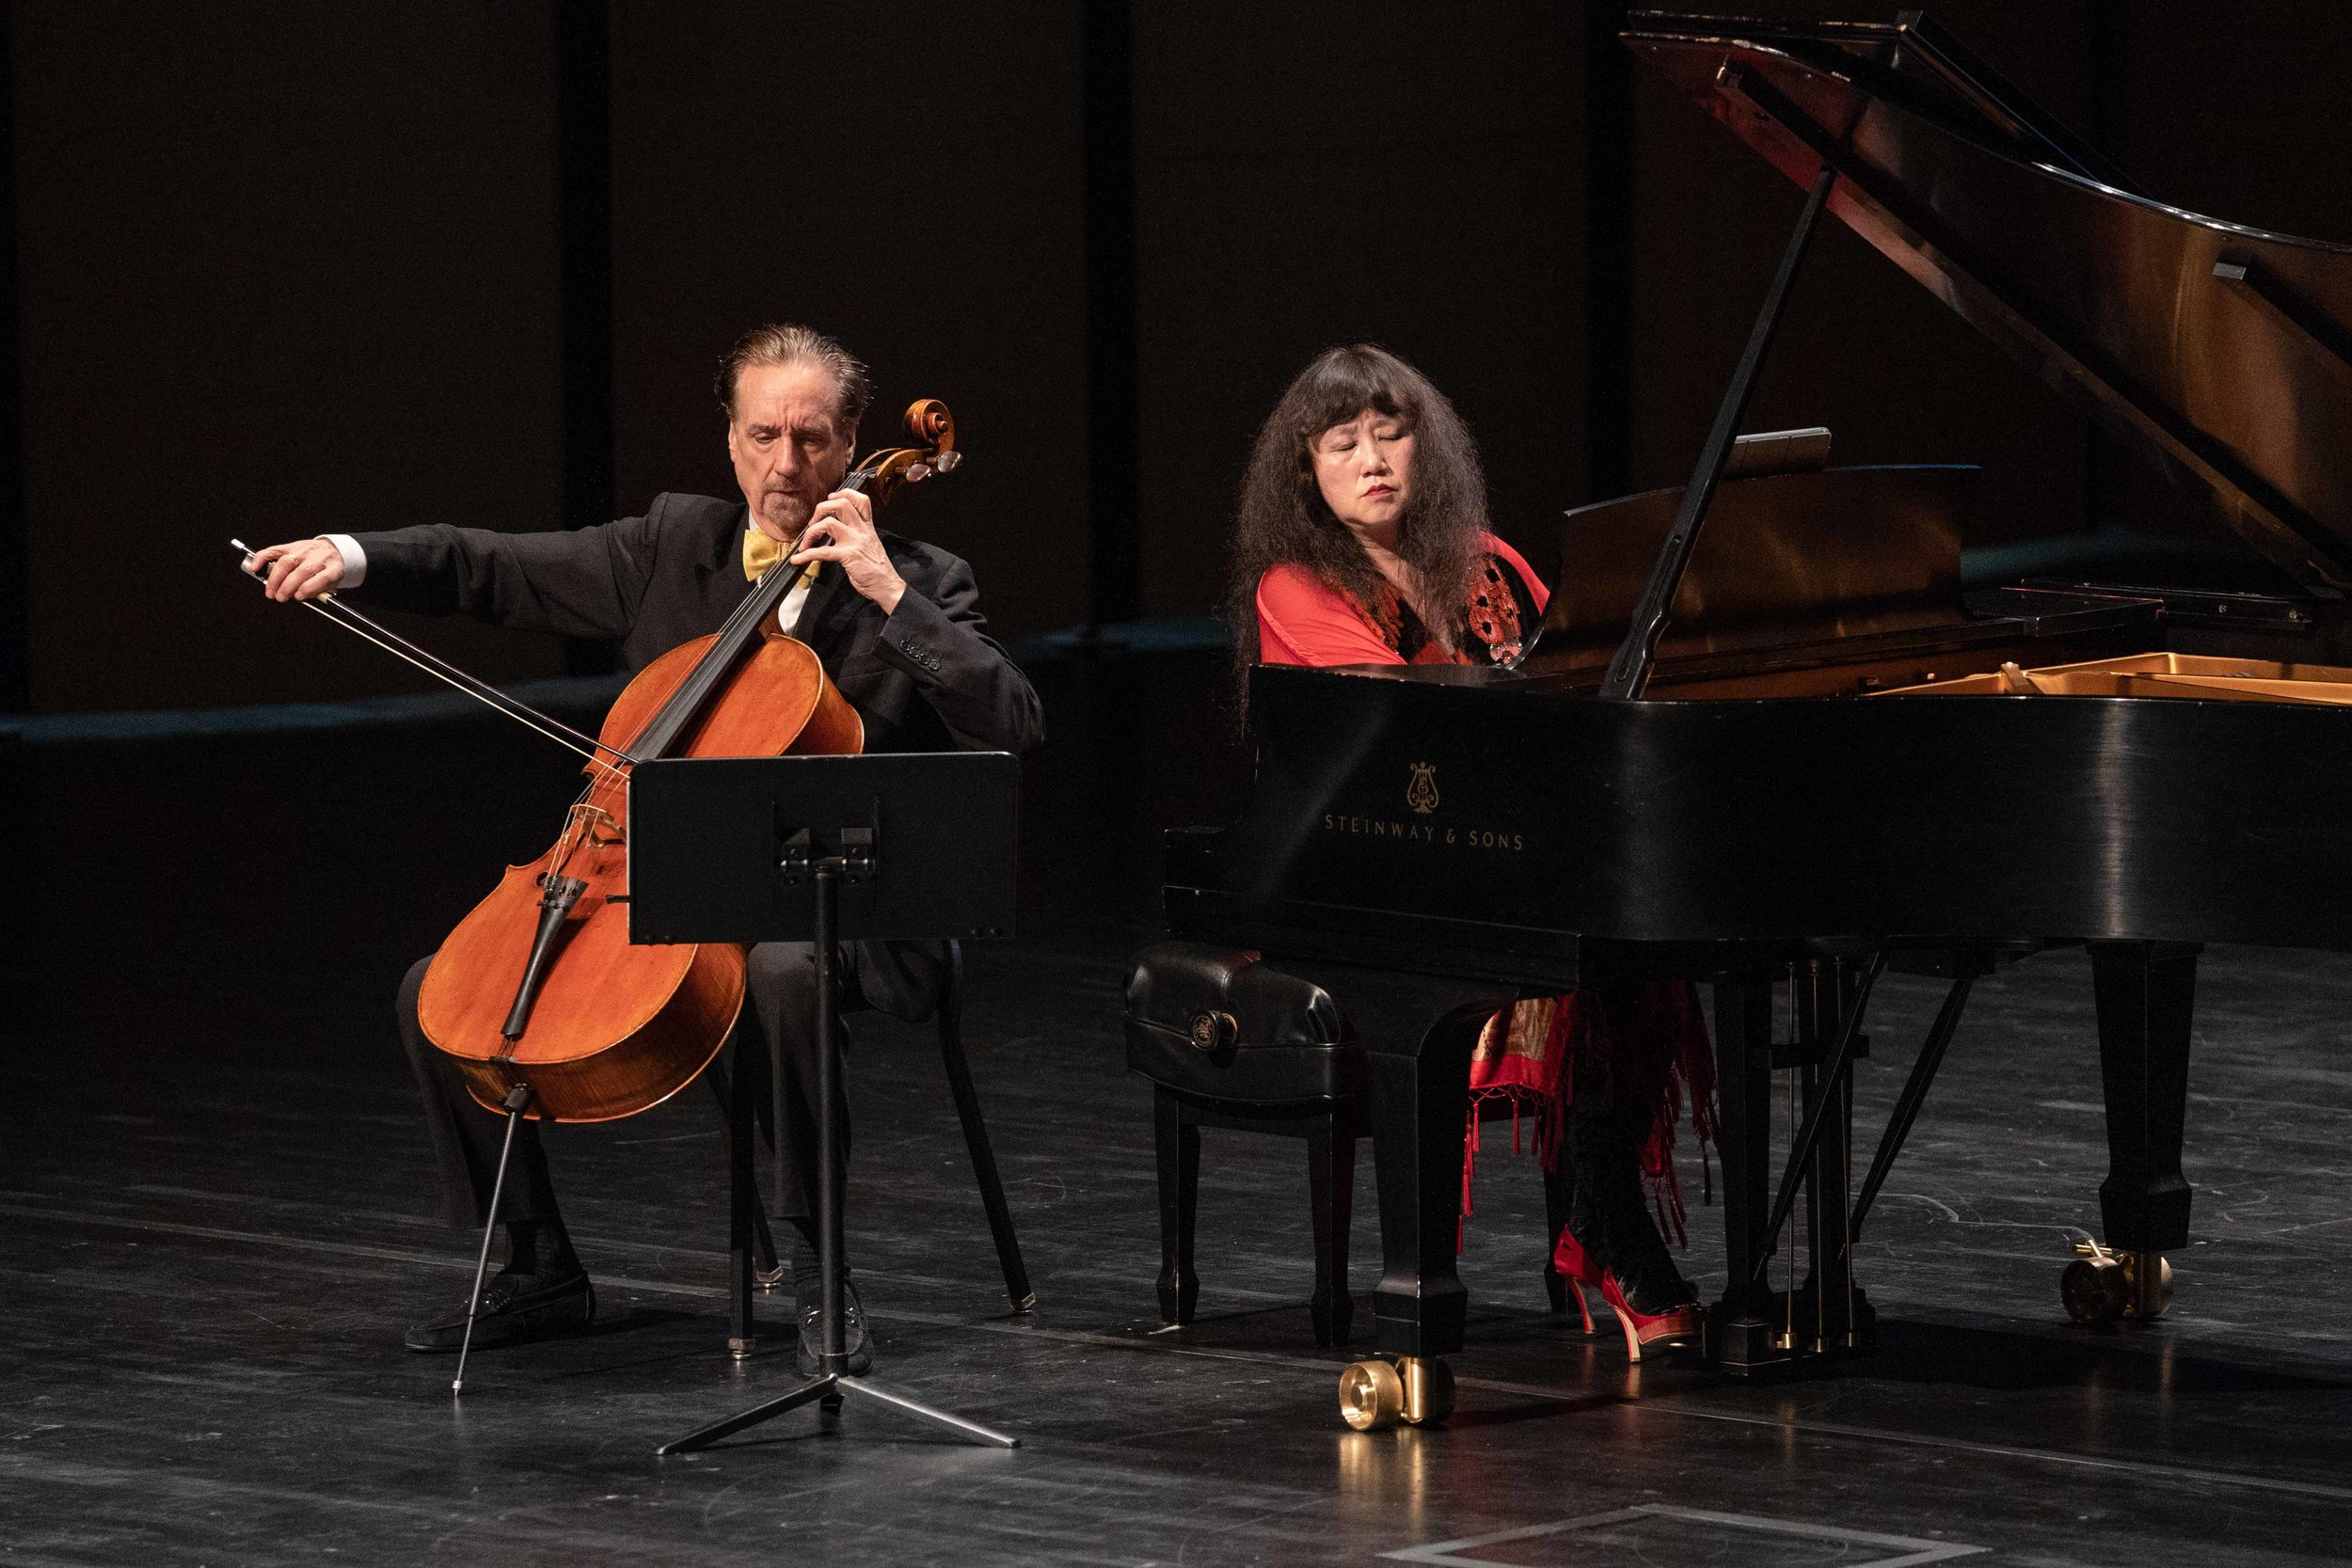 Chamber musicians play well together: David Finckel and Wu Han for Harris Theater. (Photo by Elliot Mandel, copyright 2018, all rights reserved.)